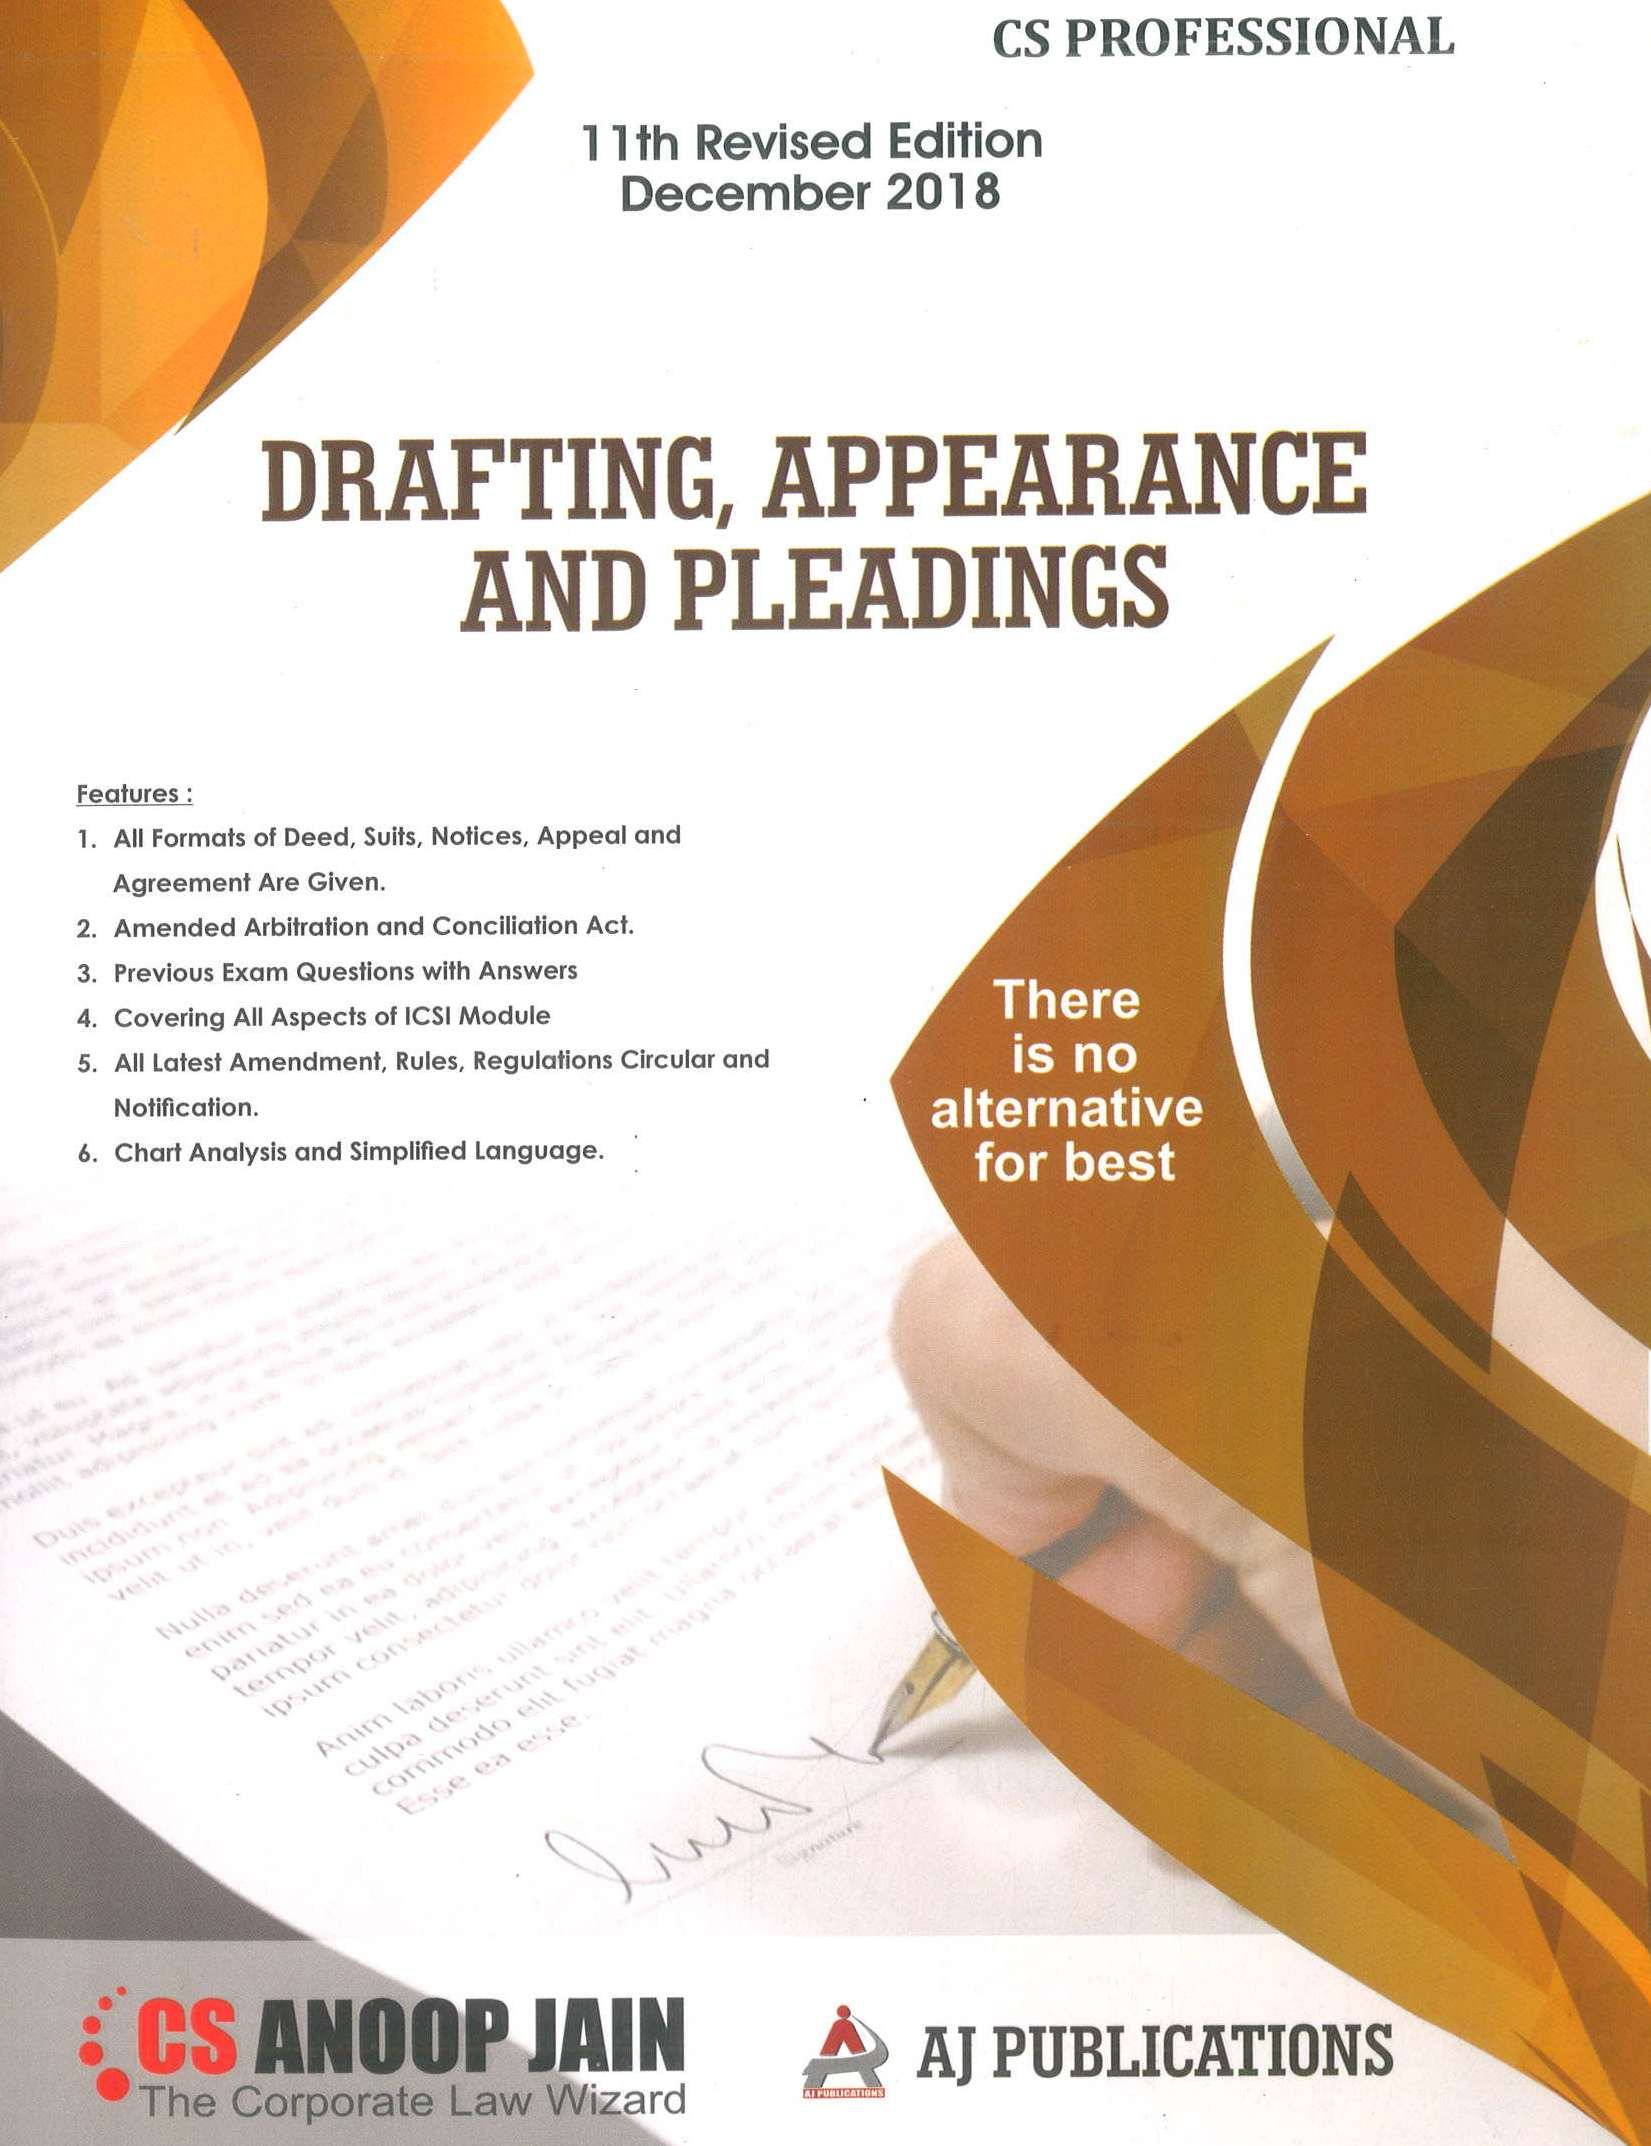 AJ Publication Drafting Appearance and Pleadings for Dec 2018 Exam for CS Professional by CS Anoop Jain (AJ Publishing)  11th Edition 2018